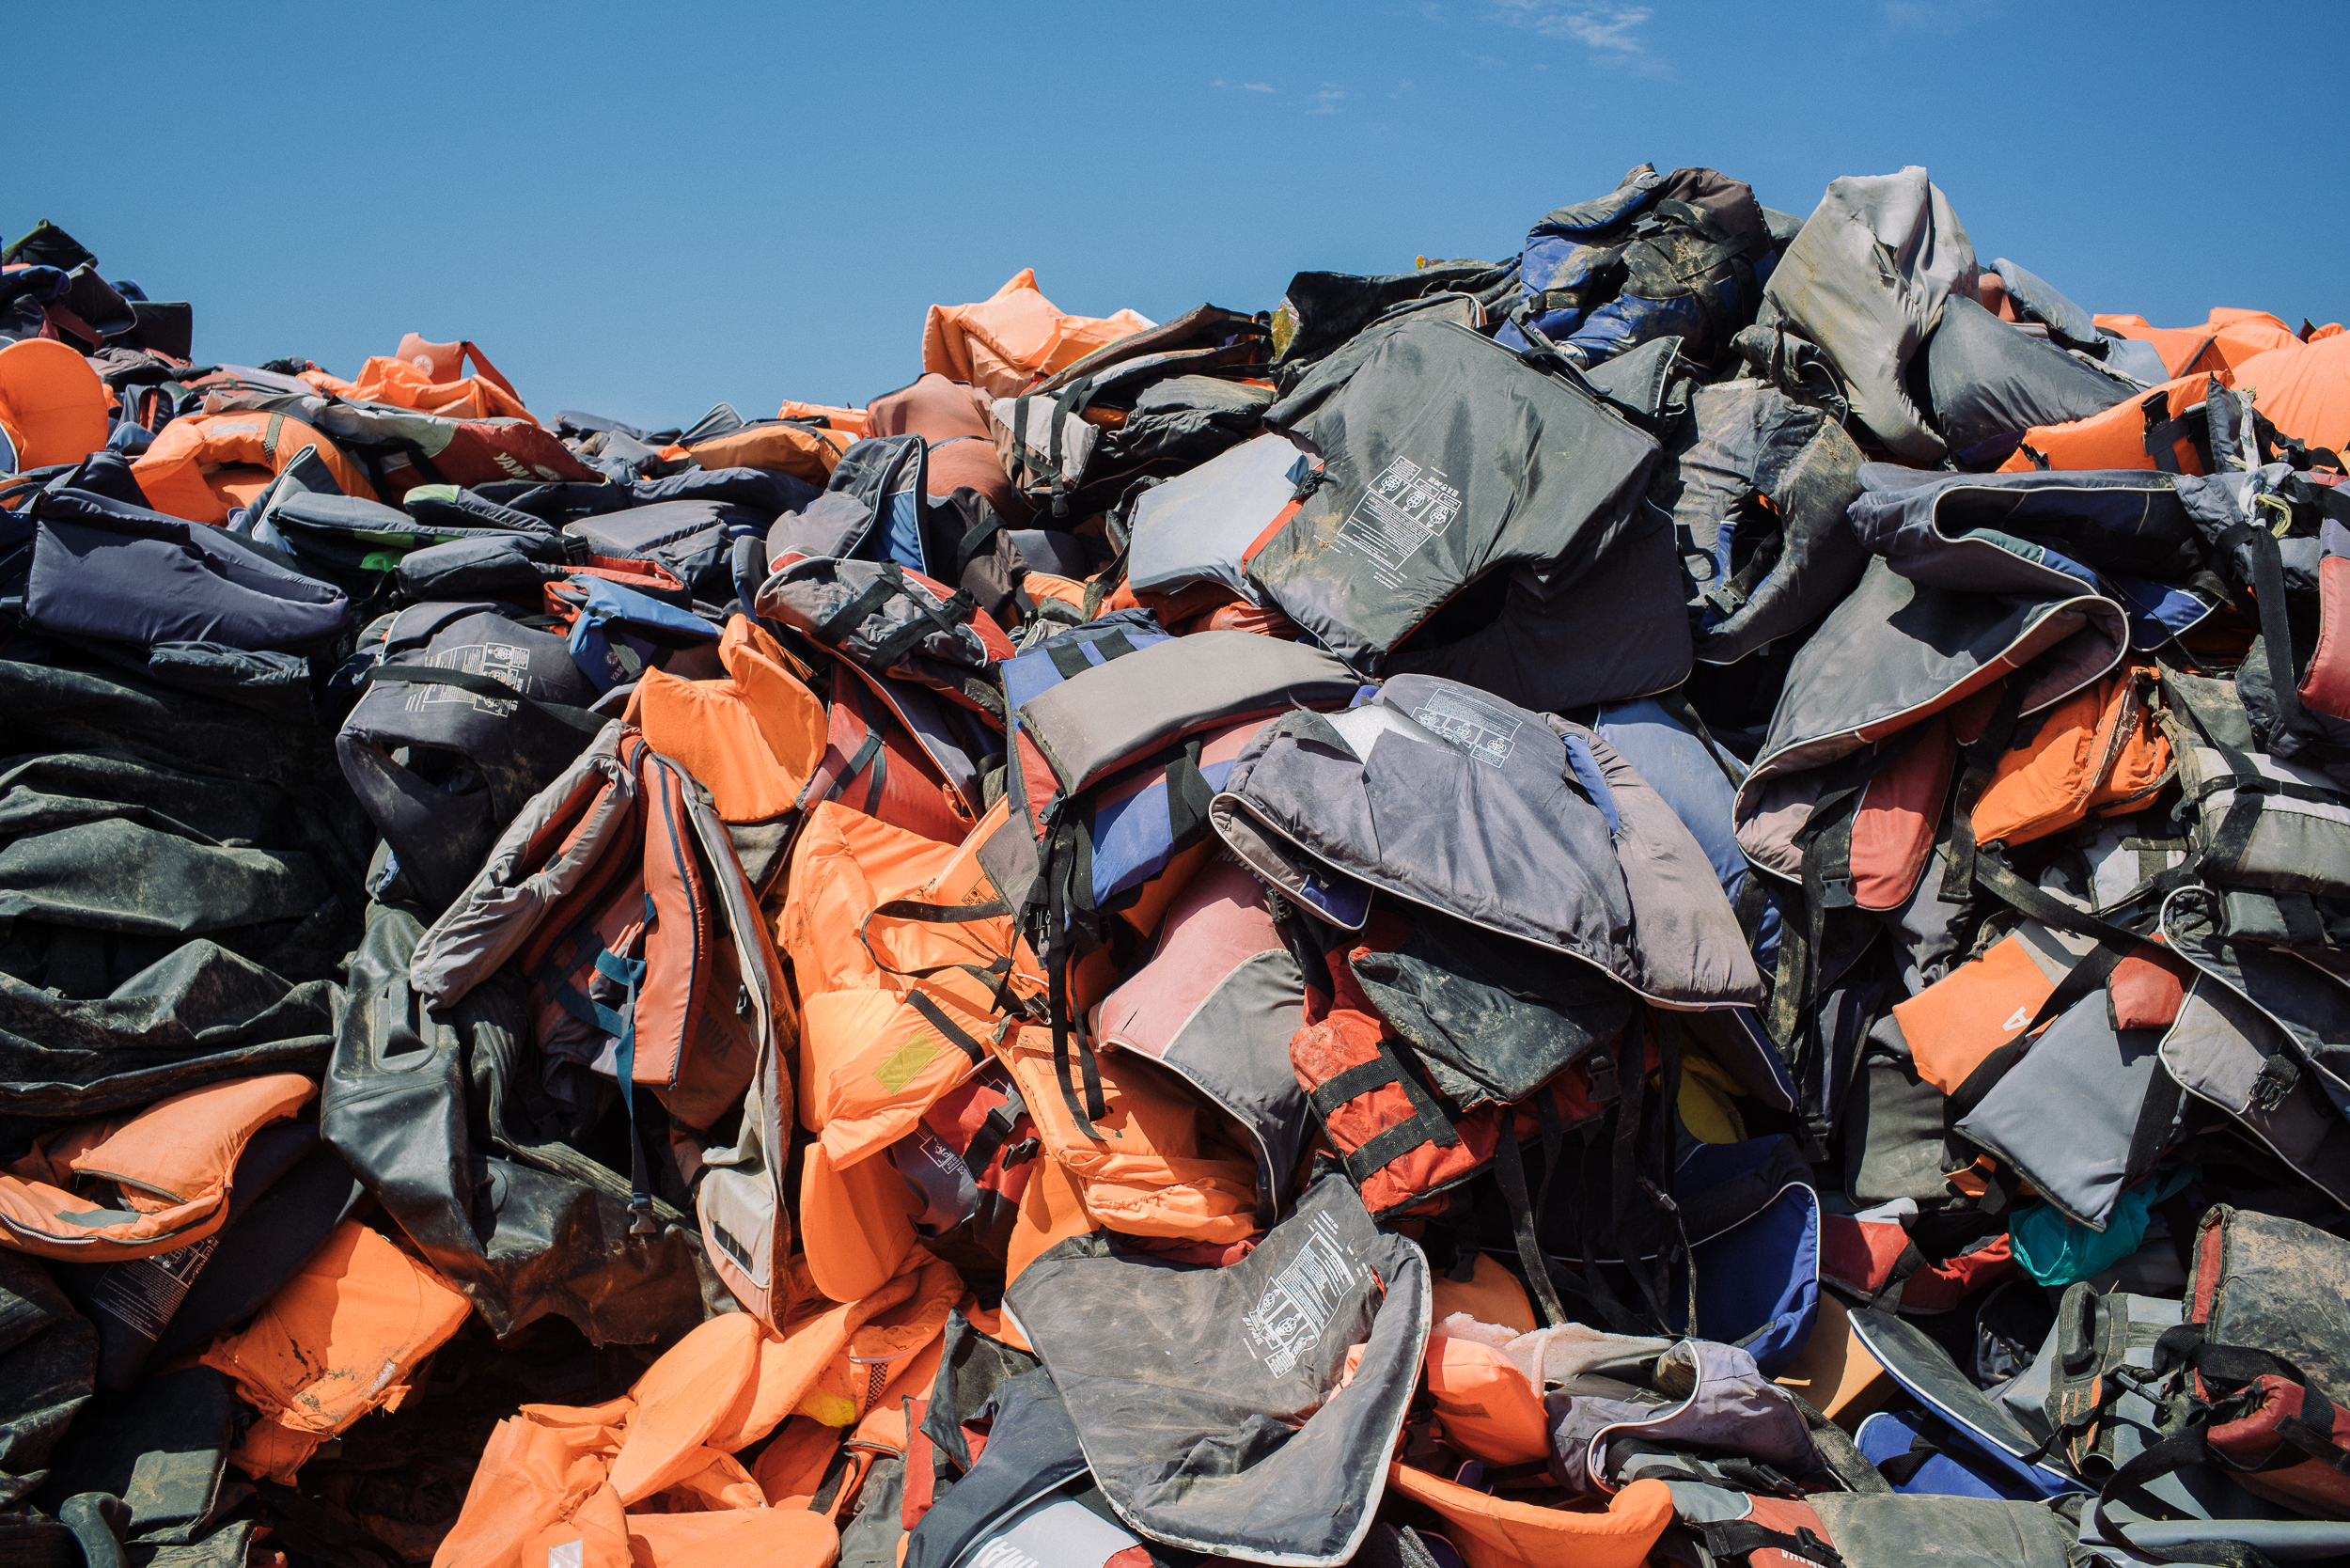 The Life Vest Cemetery where the hundreds of thousands of life vests were collected from the shores of Lesvos, reaching a height of 10m at a certain point, remains to be one of the most striking metaphors of the crisis